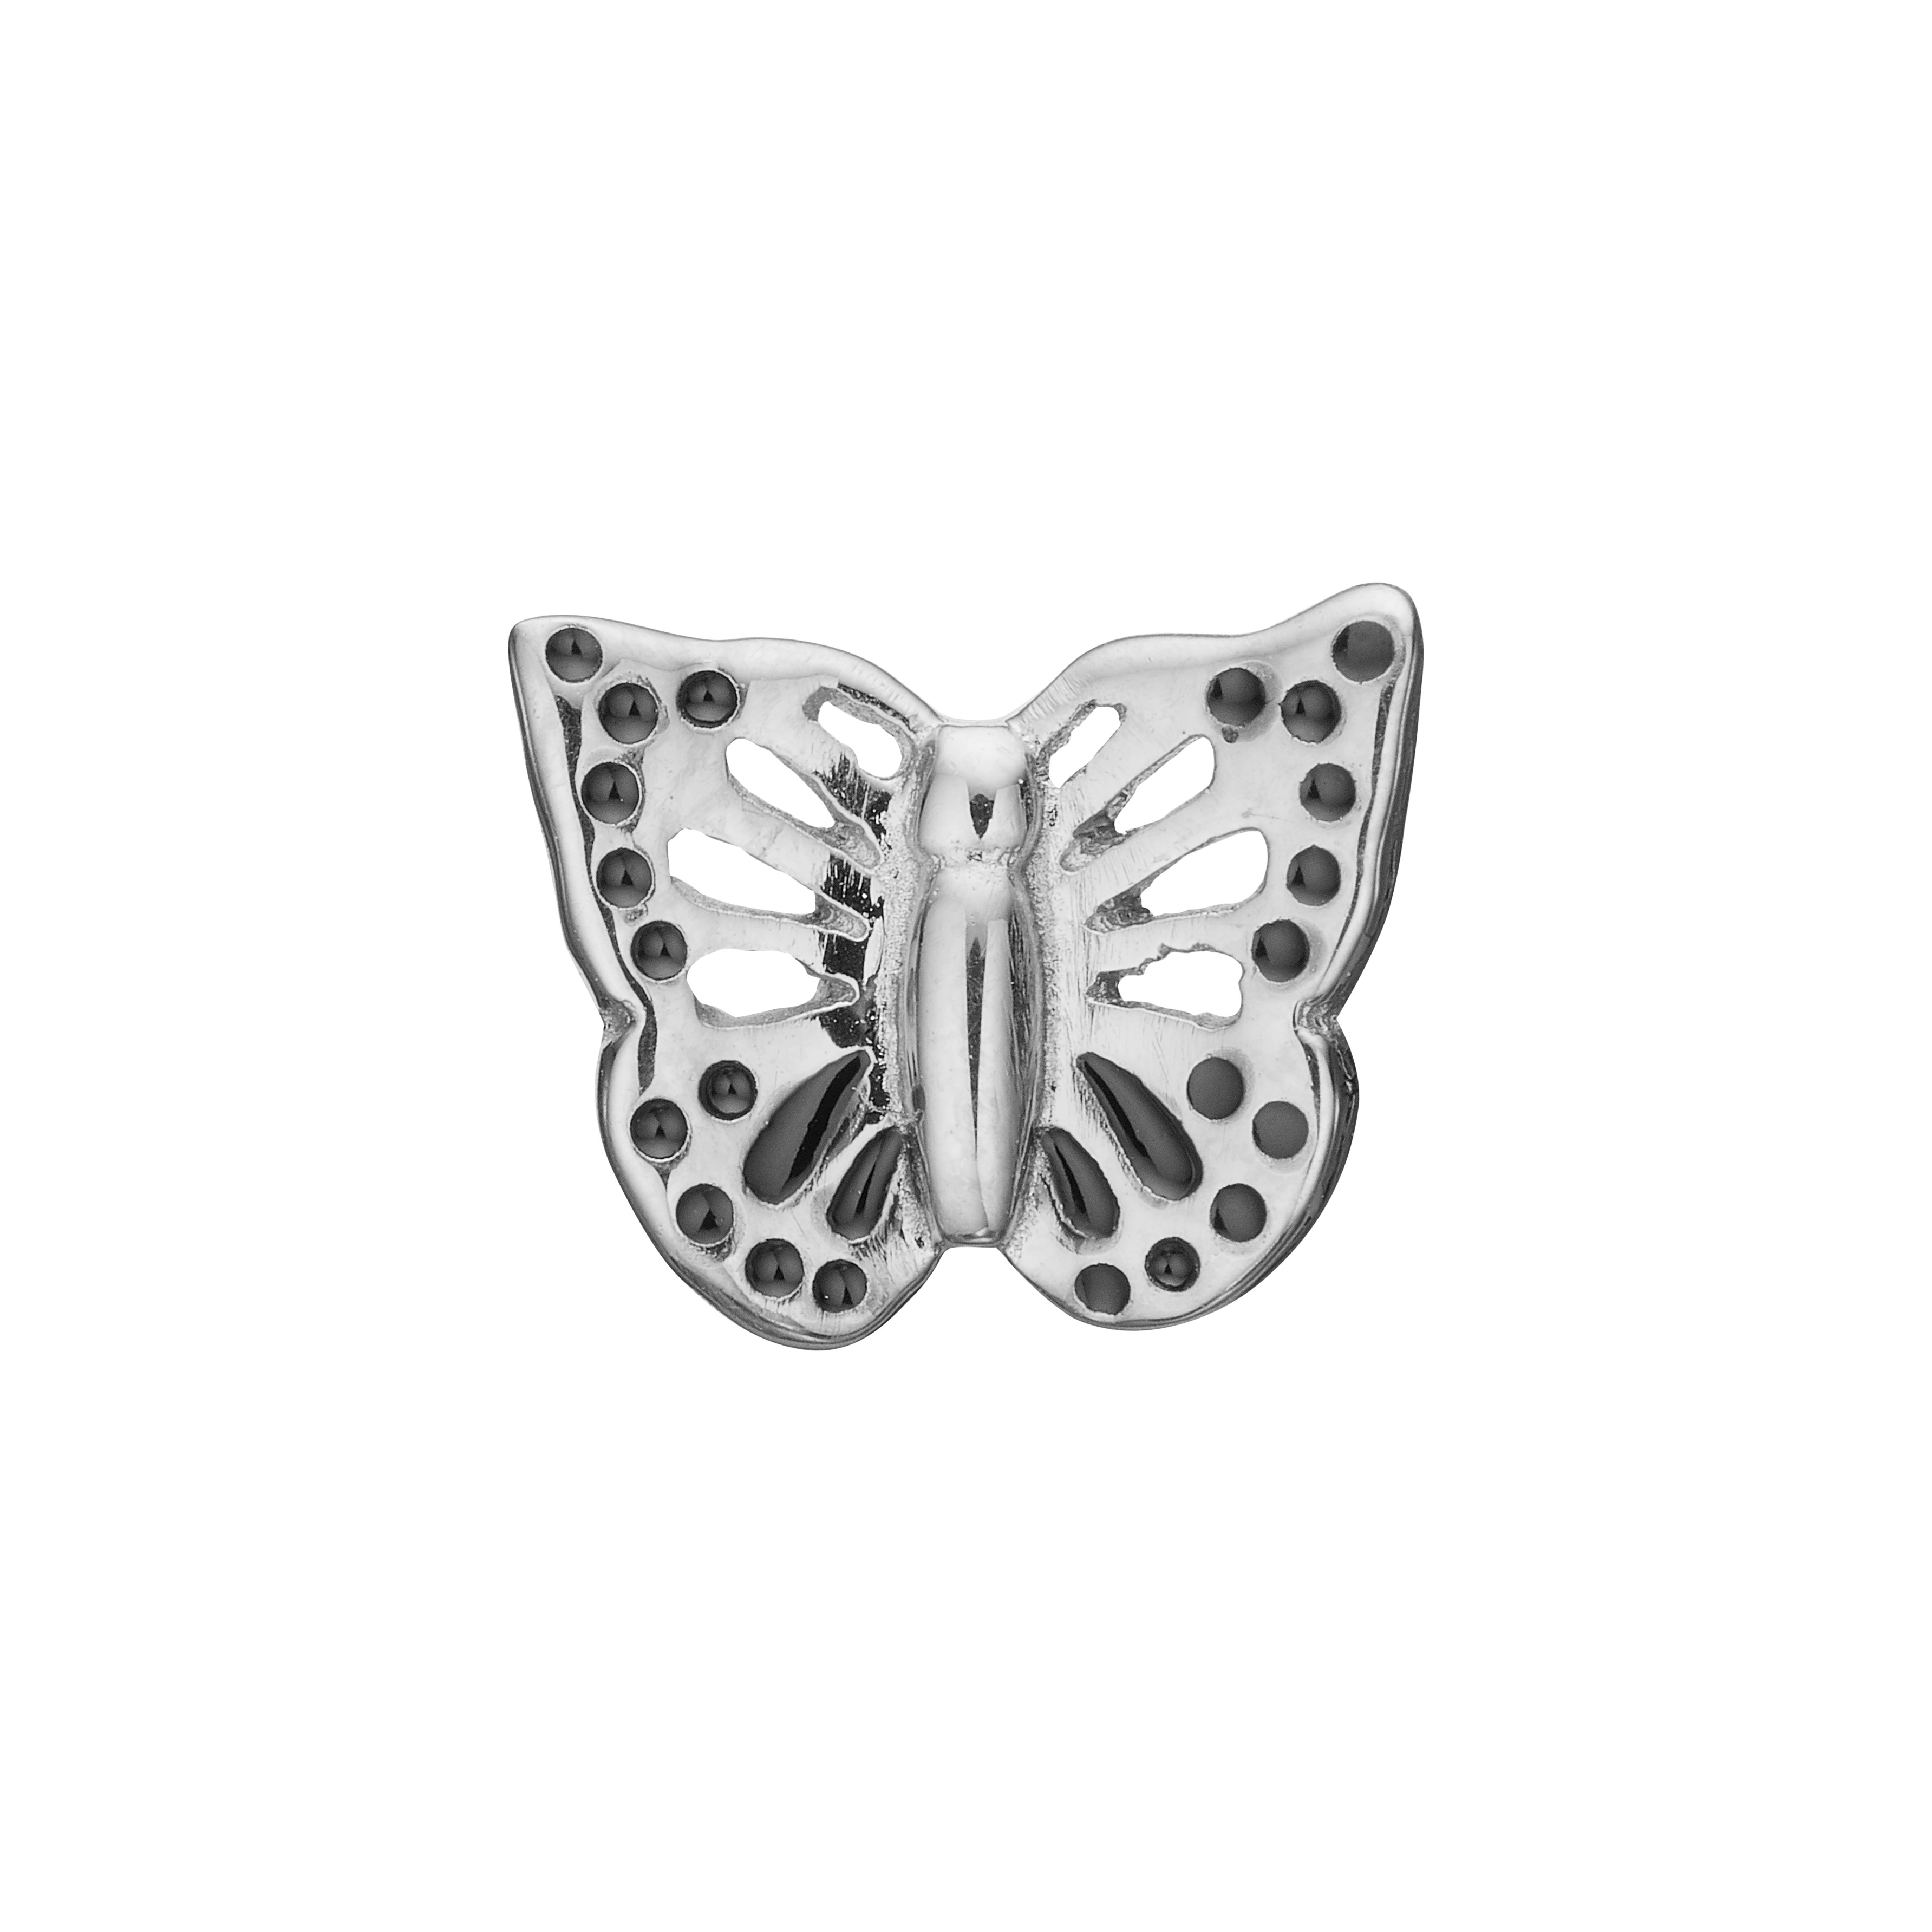 christina watches – Christina butterflies - 671-s26 fra brodersen + kobborg